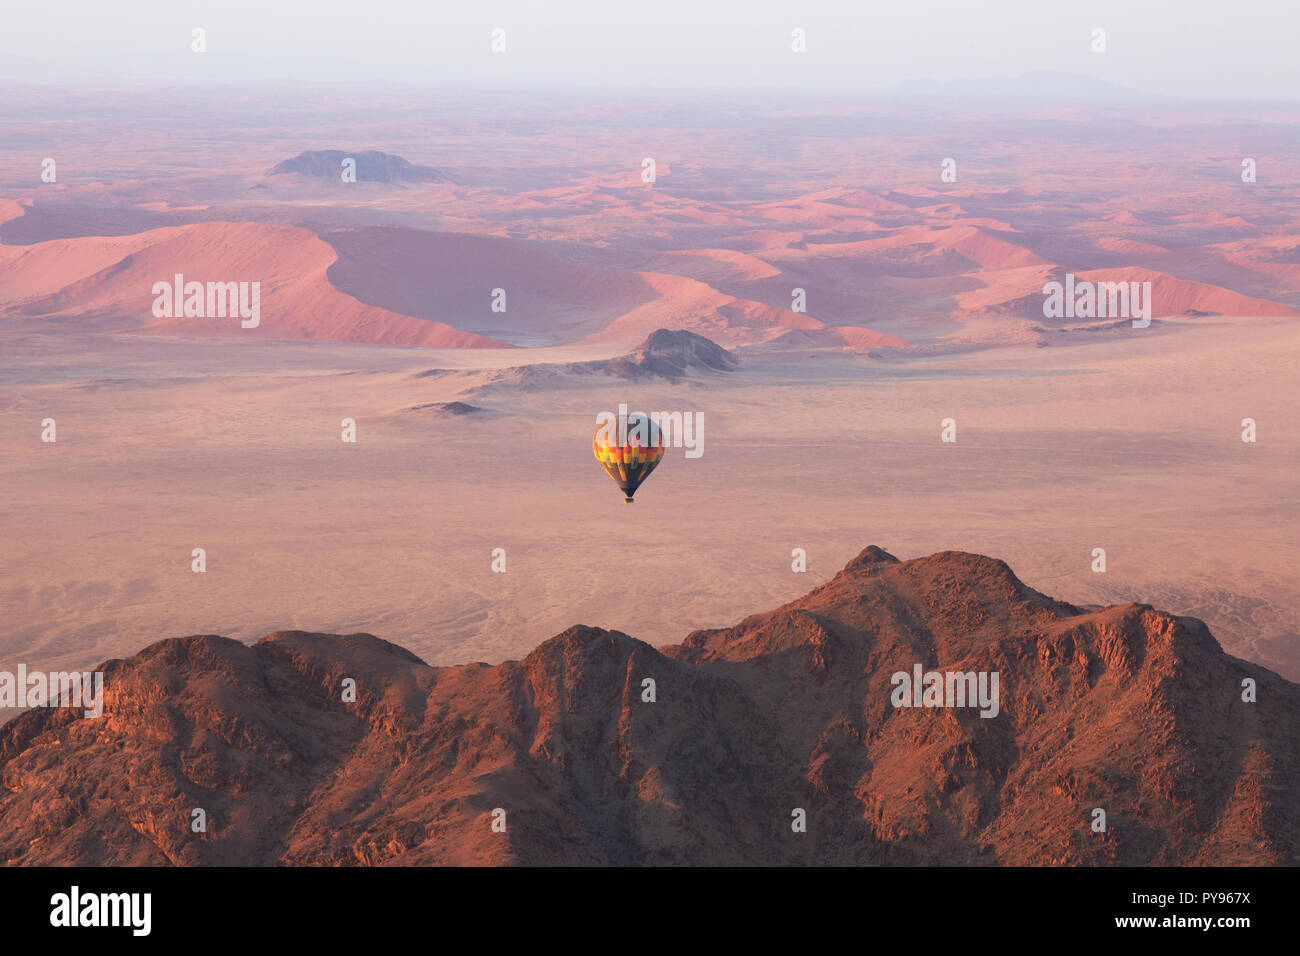 namibia-travel-hot-air-balloon-at-sunrise-over-the-namib-desert-example-of-adventure-travel-namibia-africa-PY967X.jpg